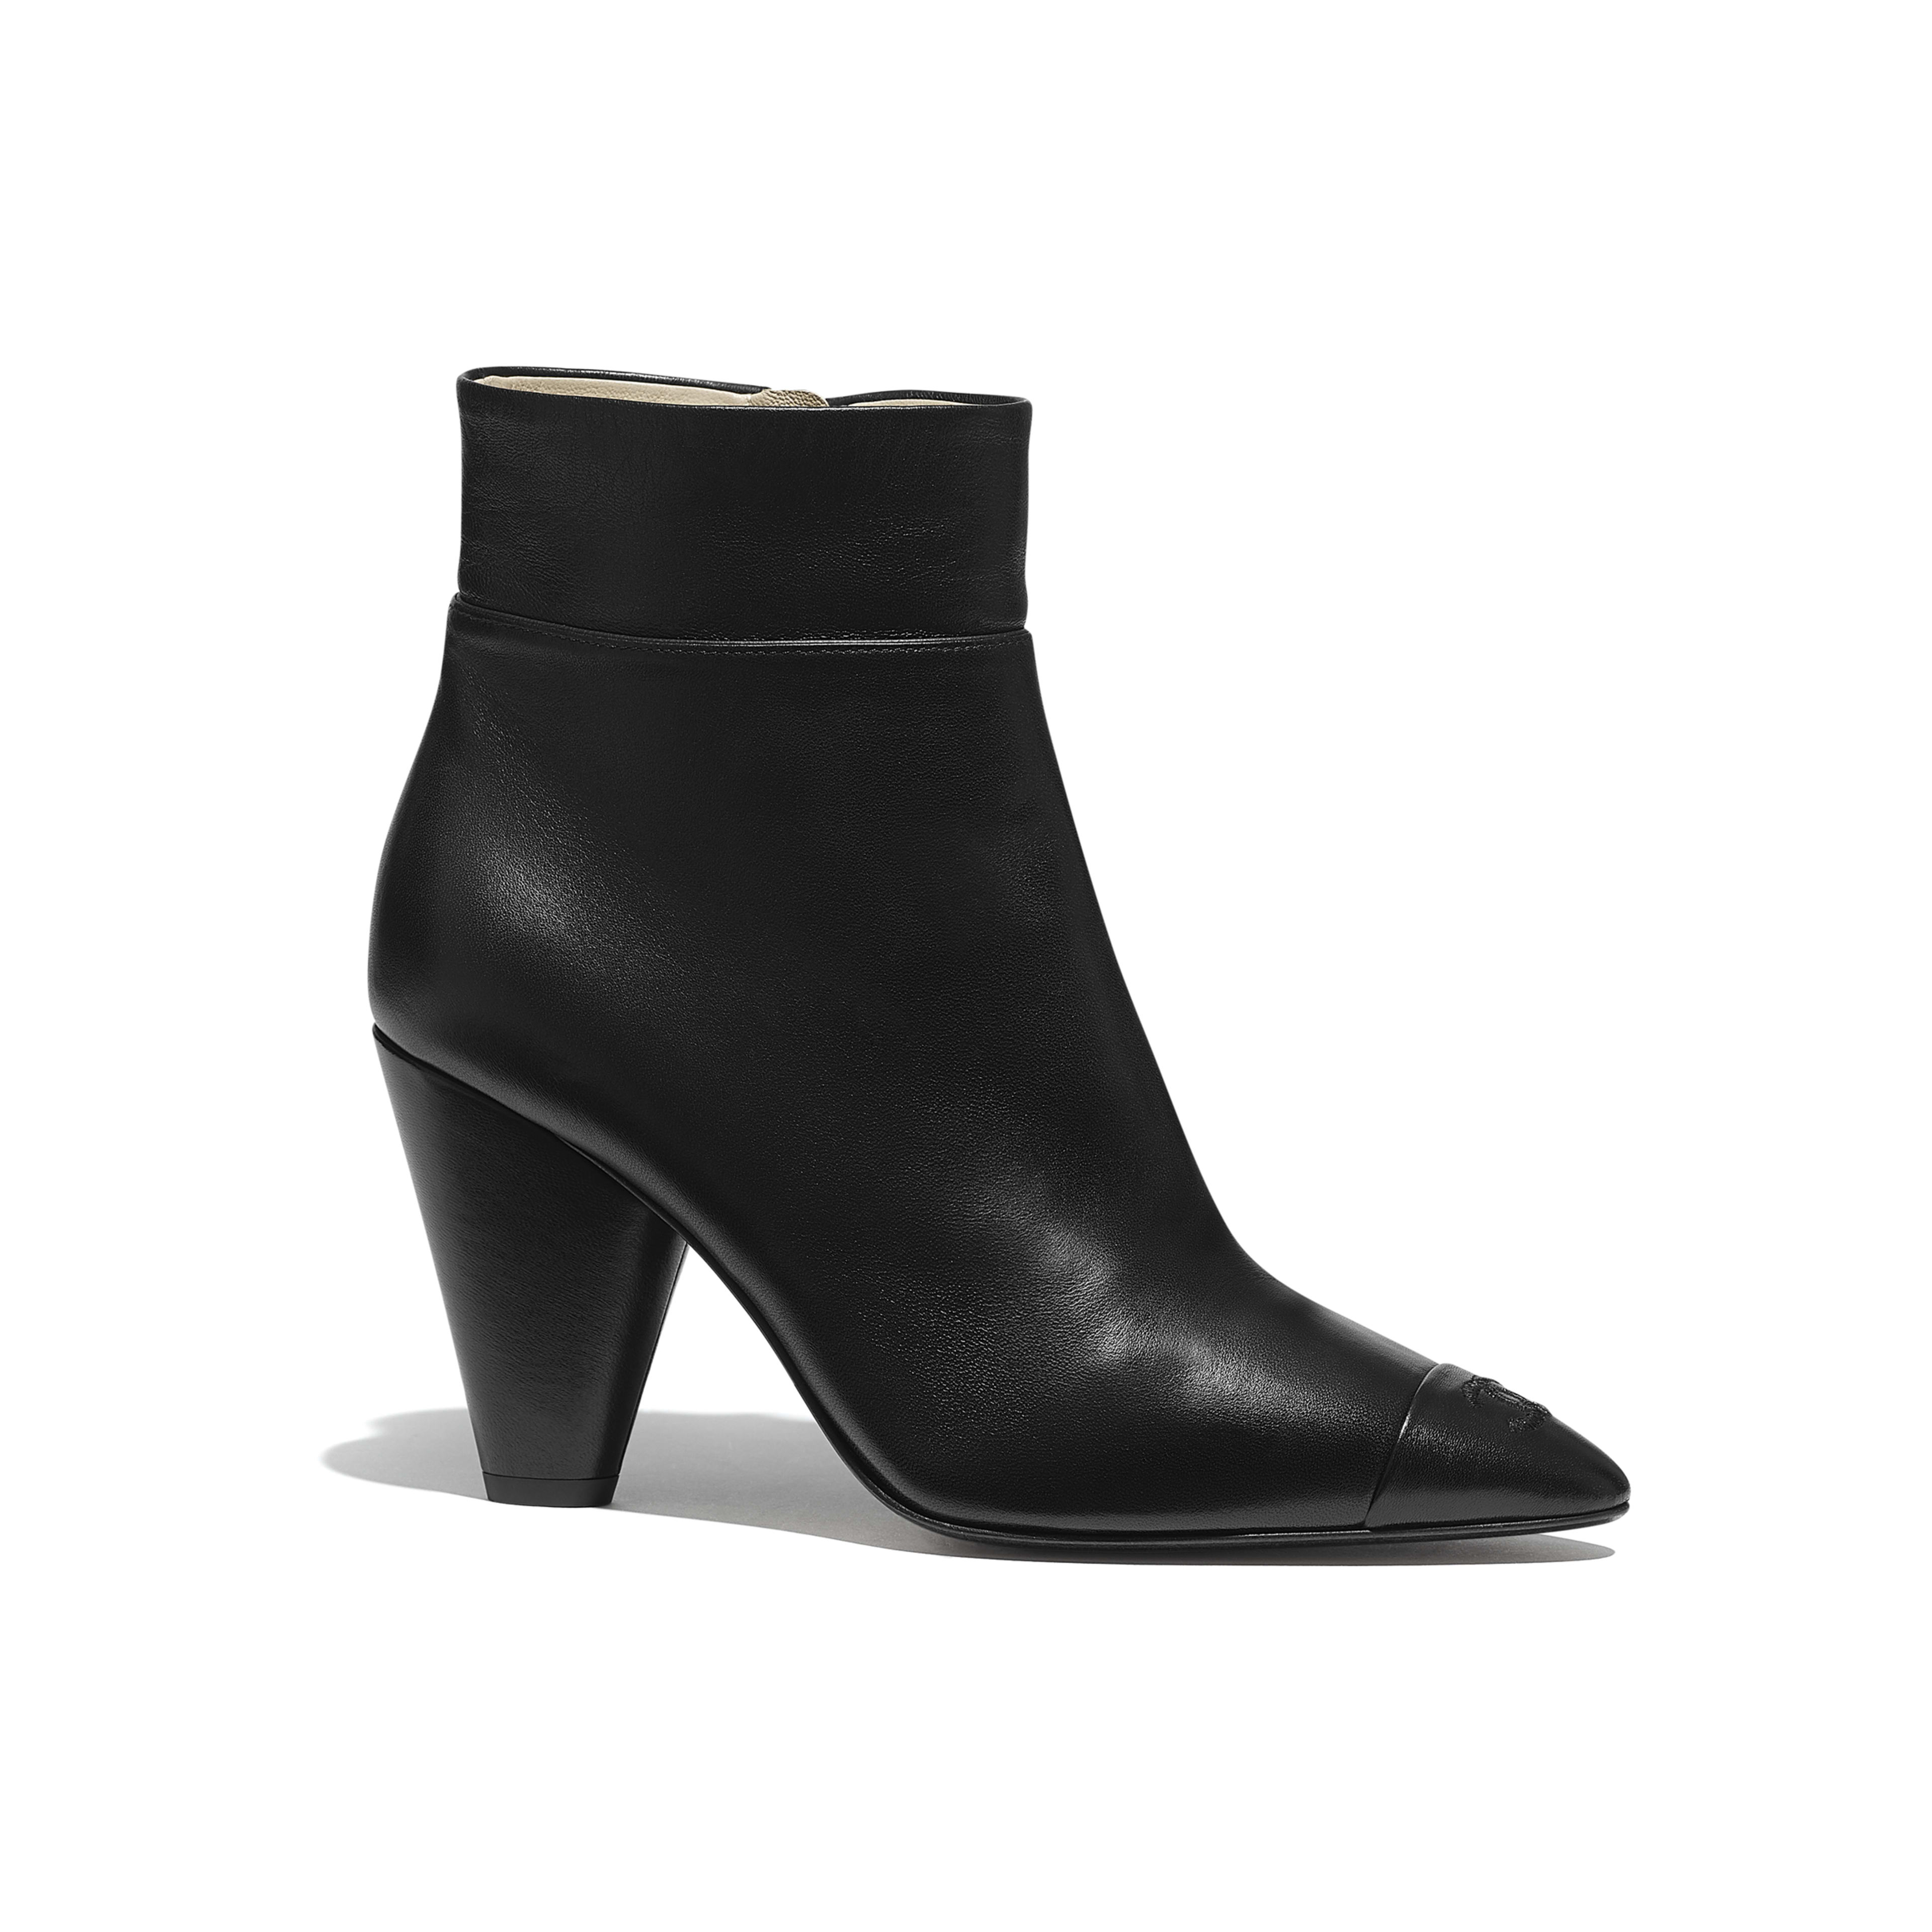 Ankle Boots - Black - Lambskin - Default view - see full sized version